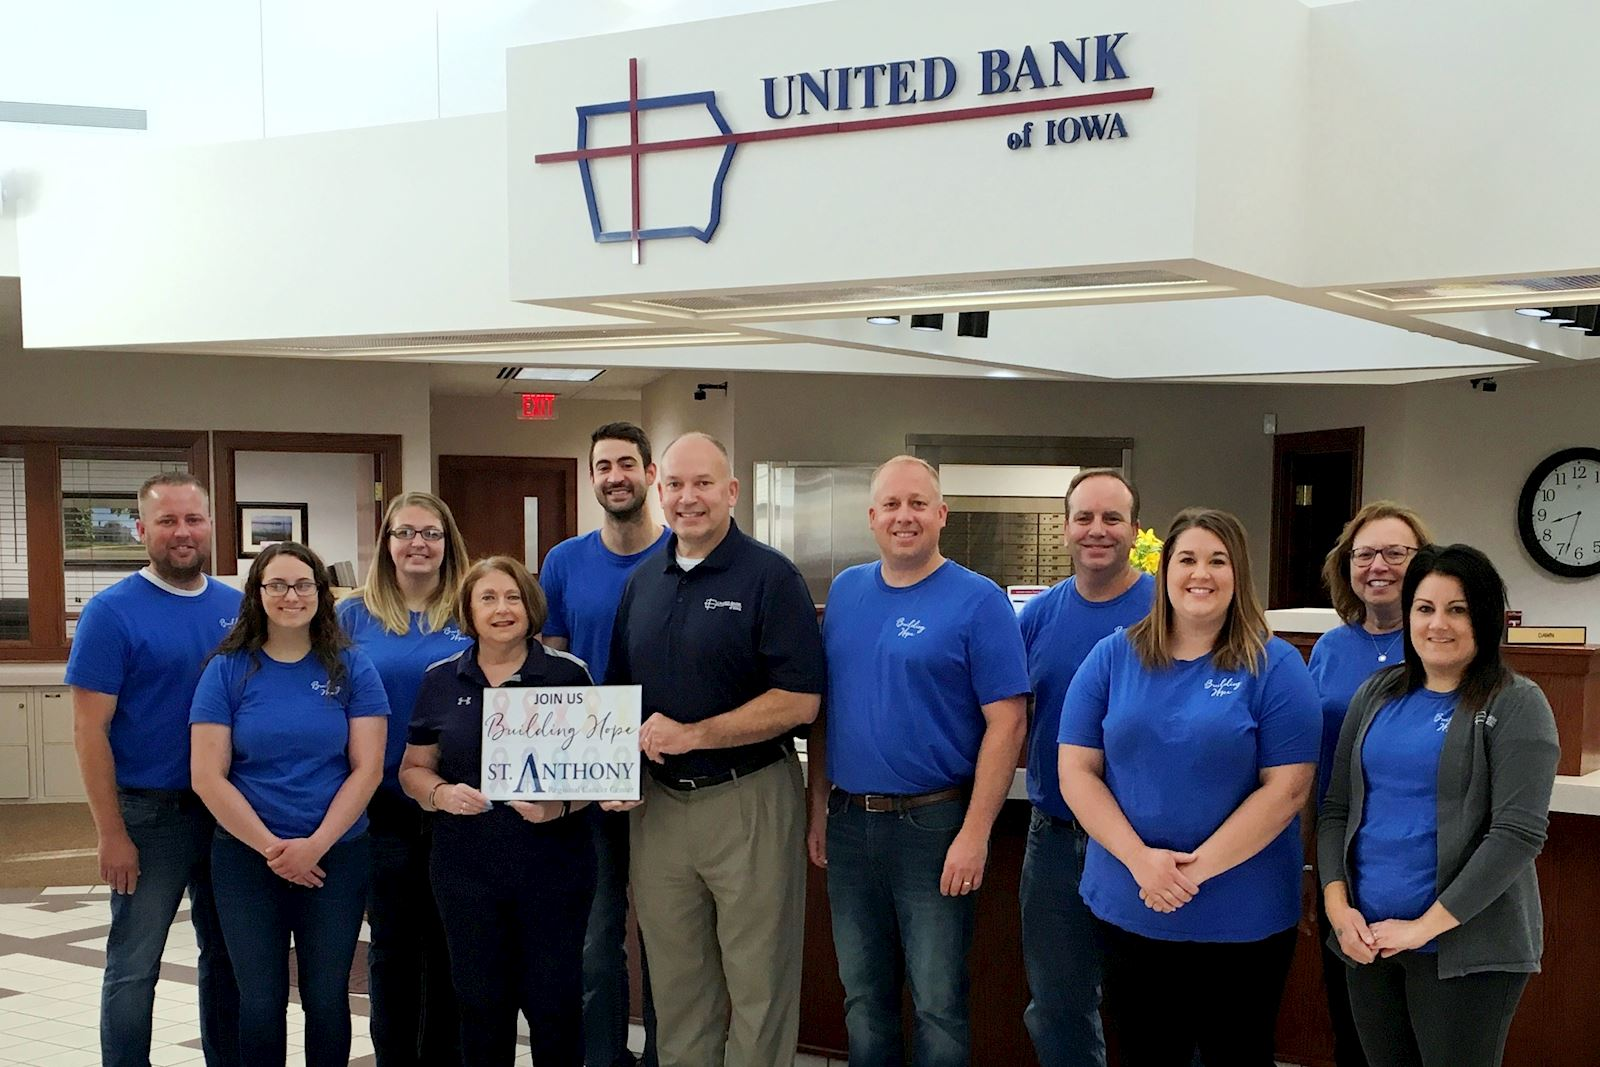 United Bank of Iowa